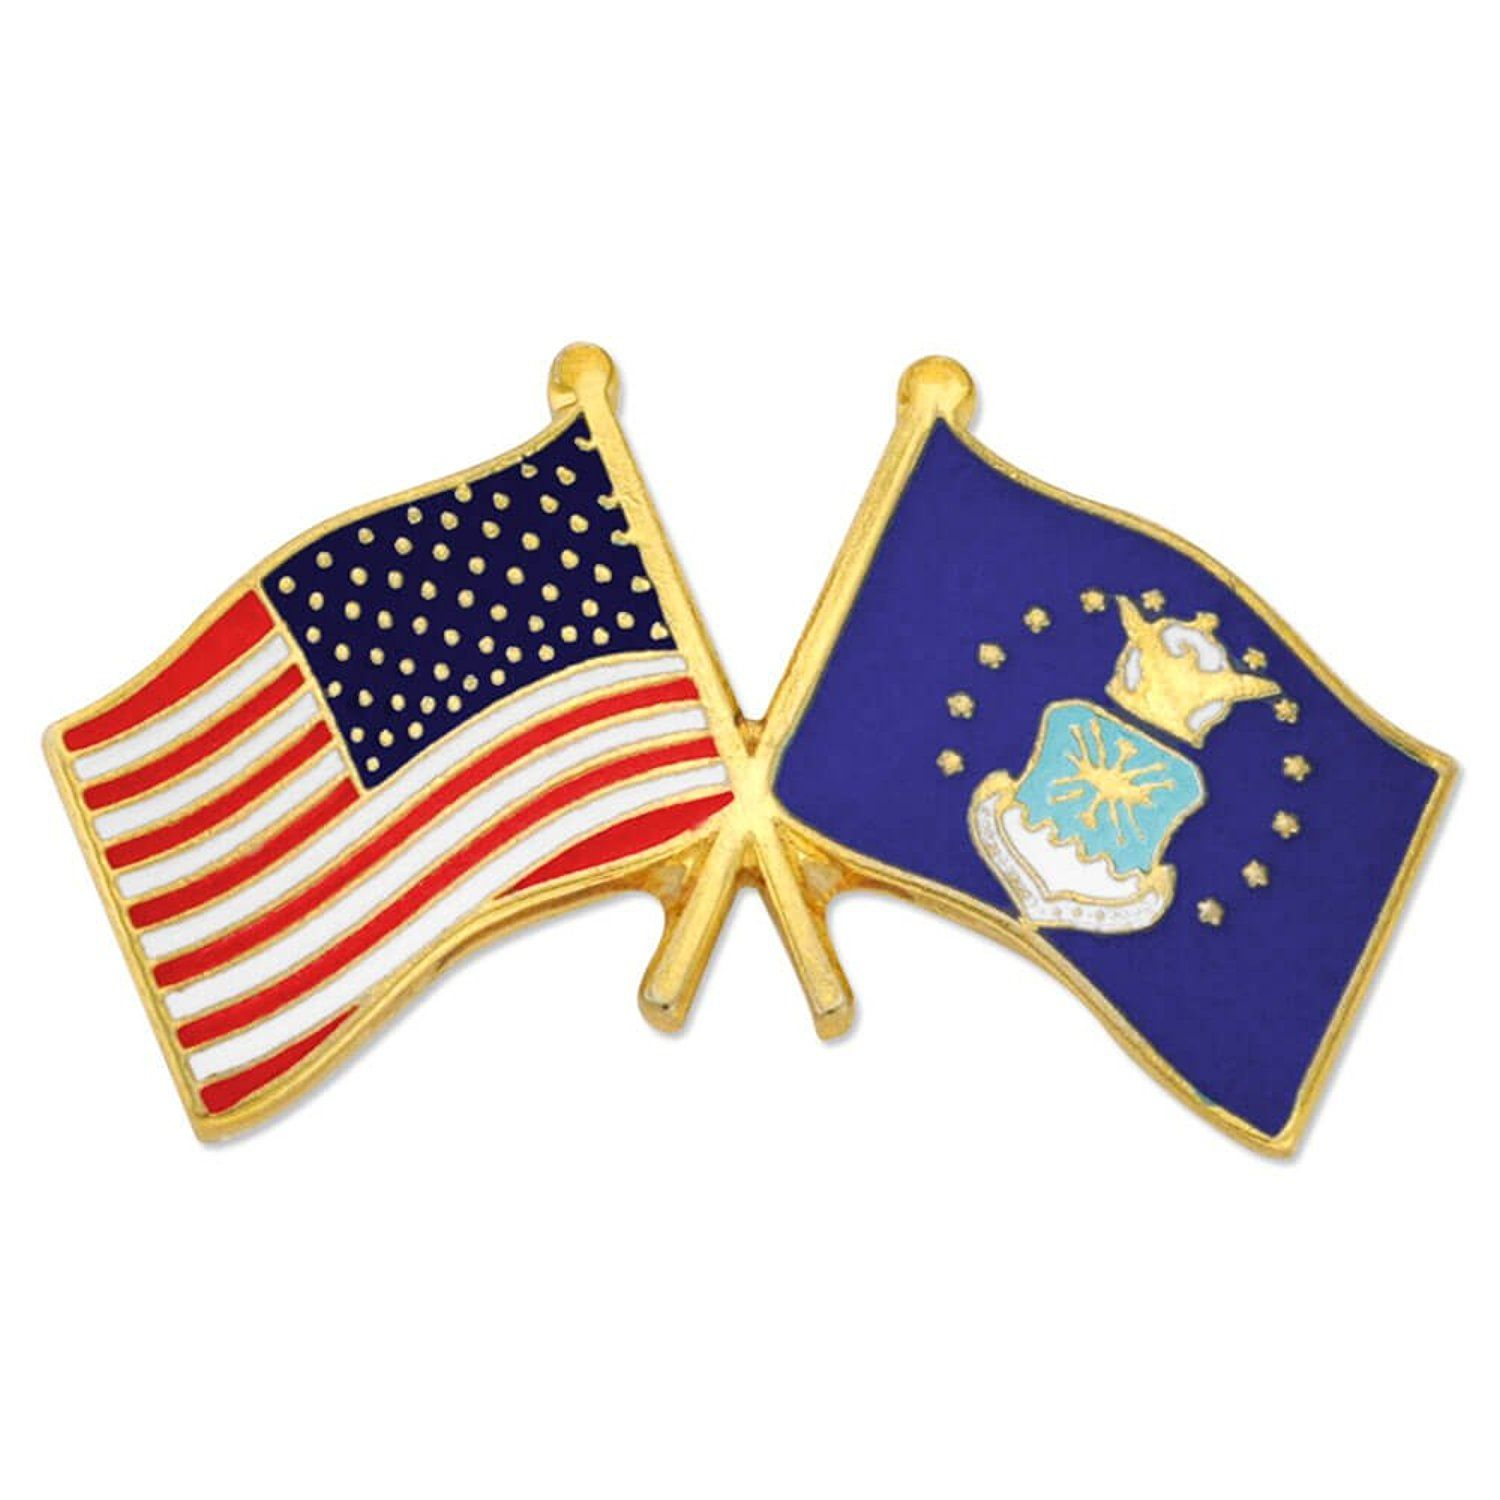 PinMart's USA and U.S. Air Force Crossed Friendship Flag